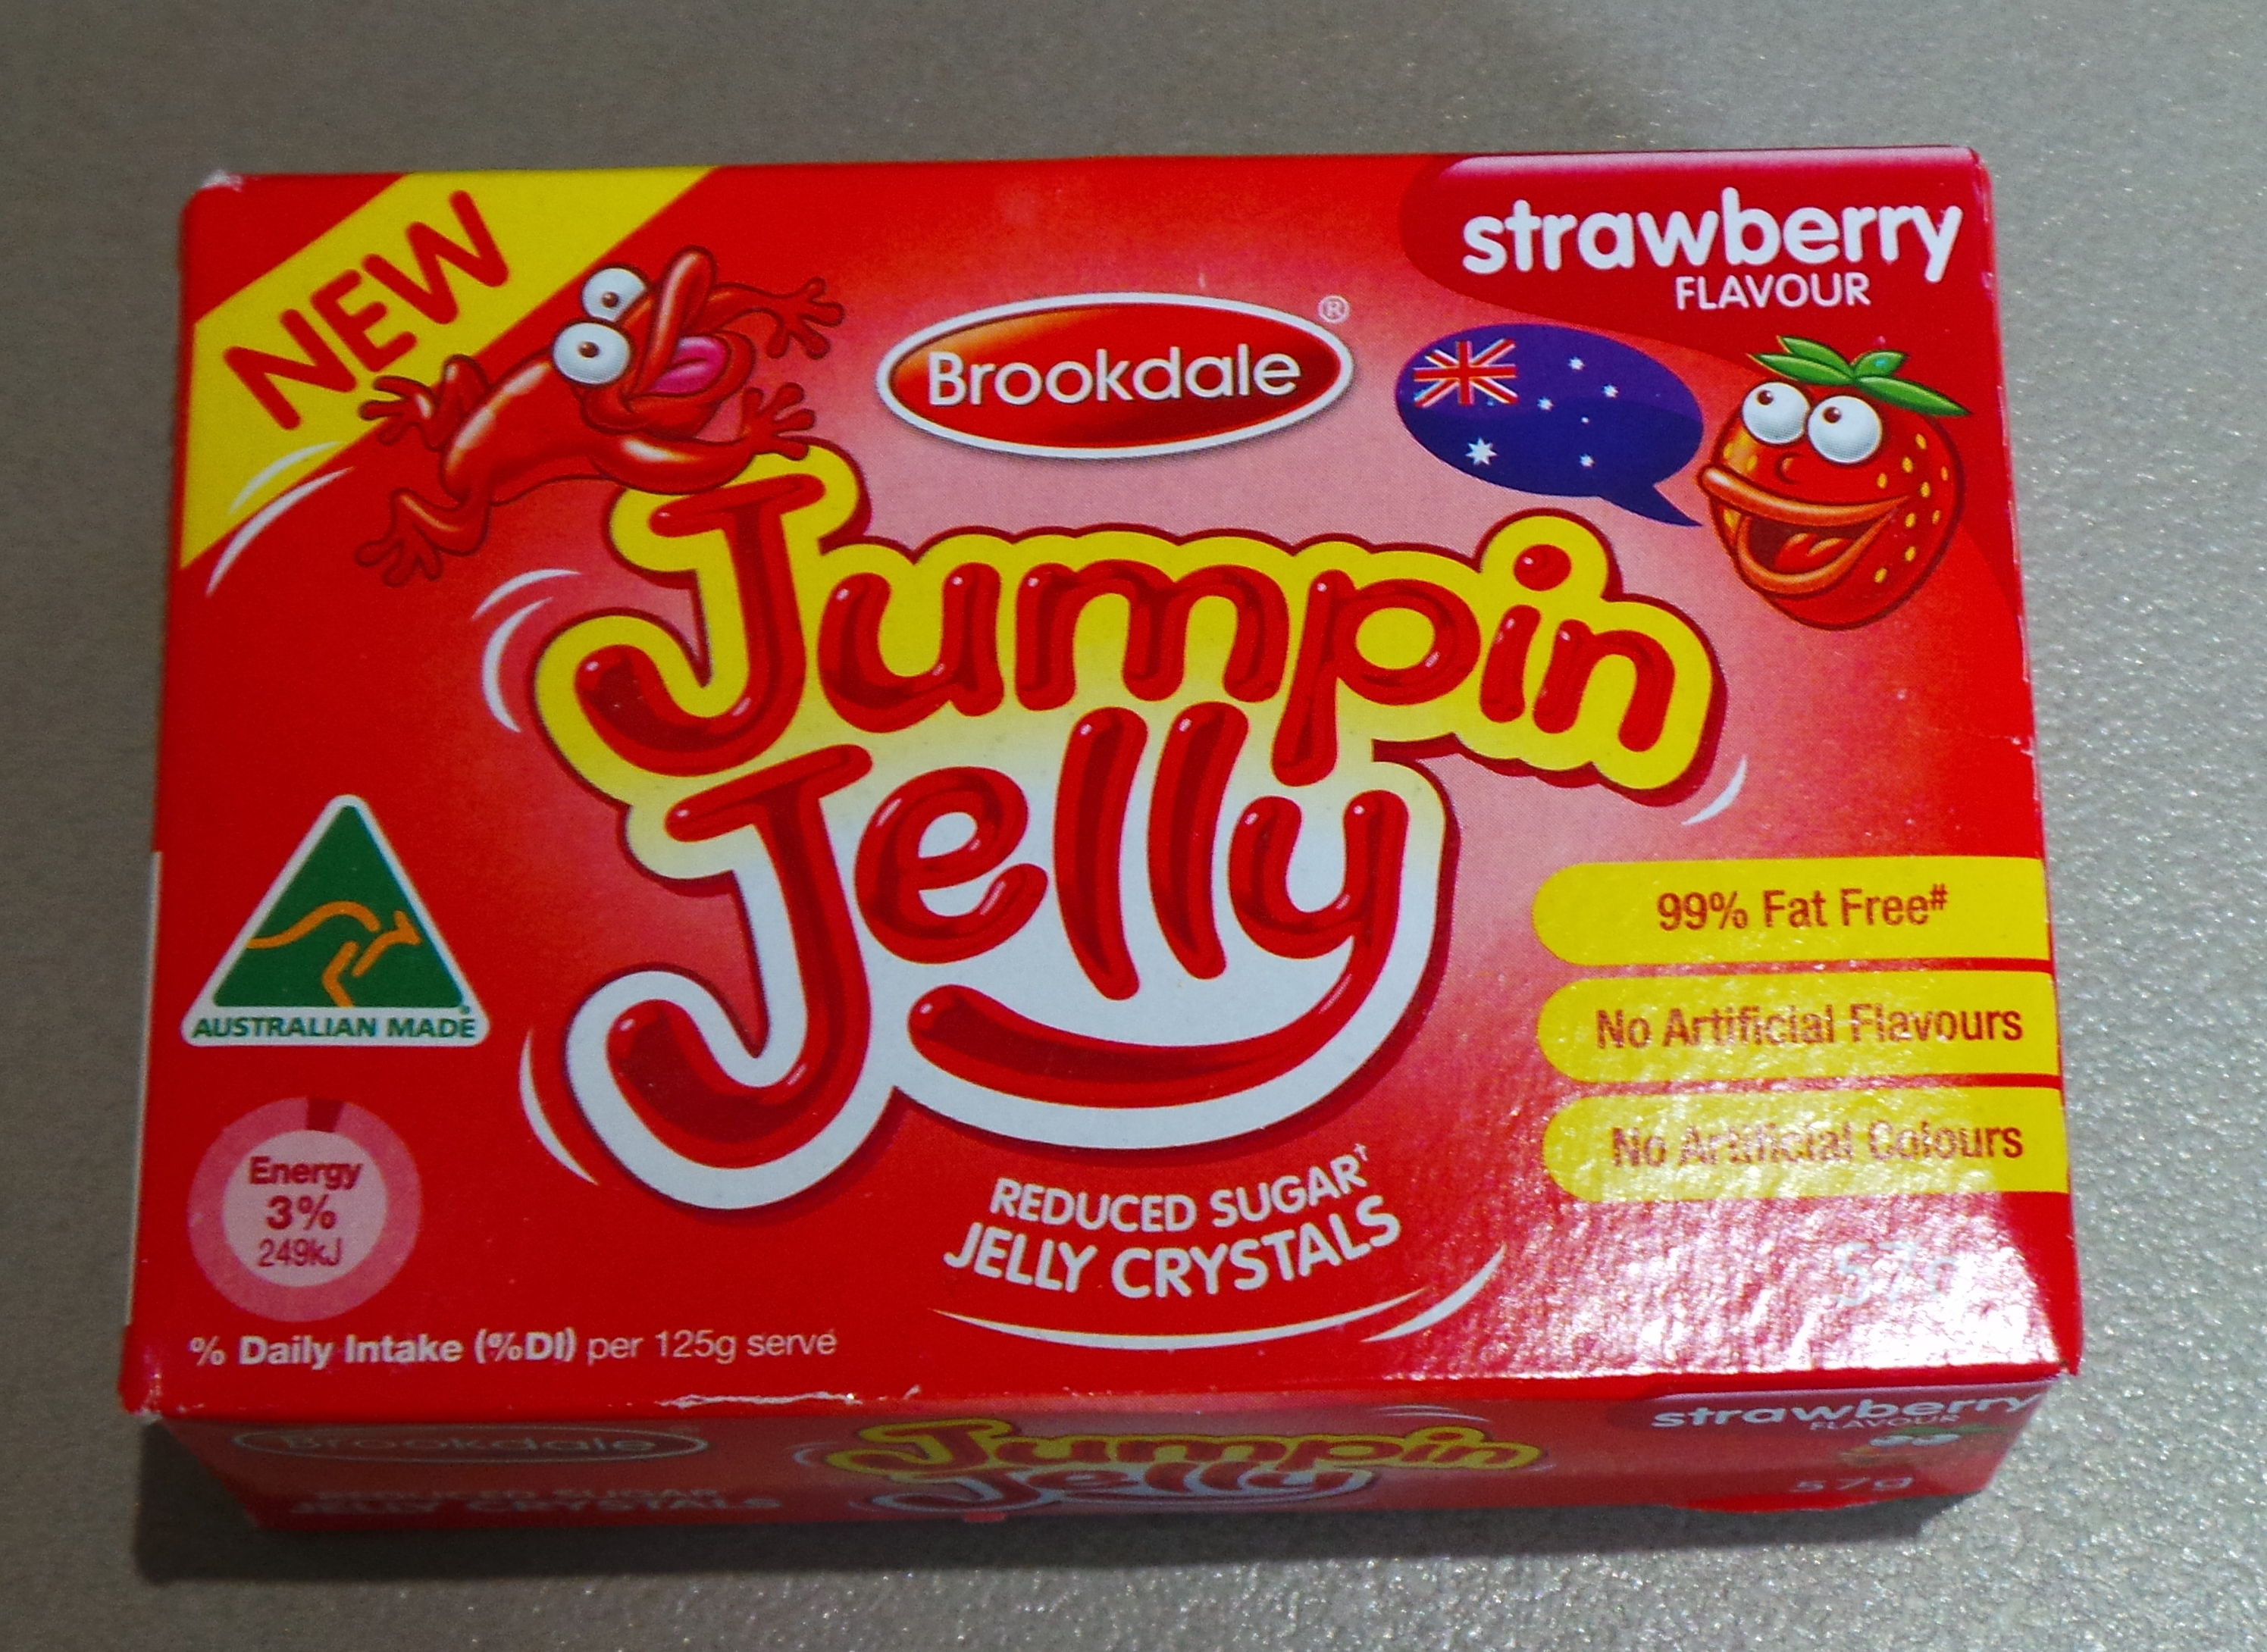 Jello Box Serving Size